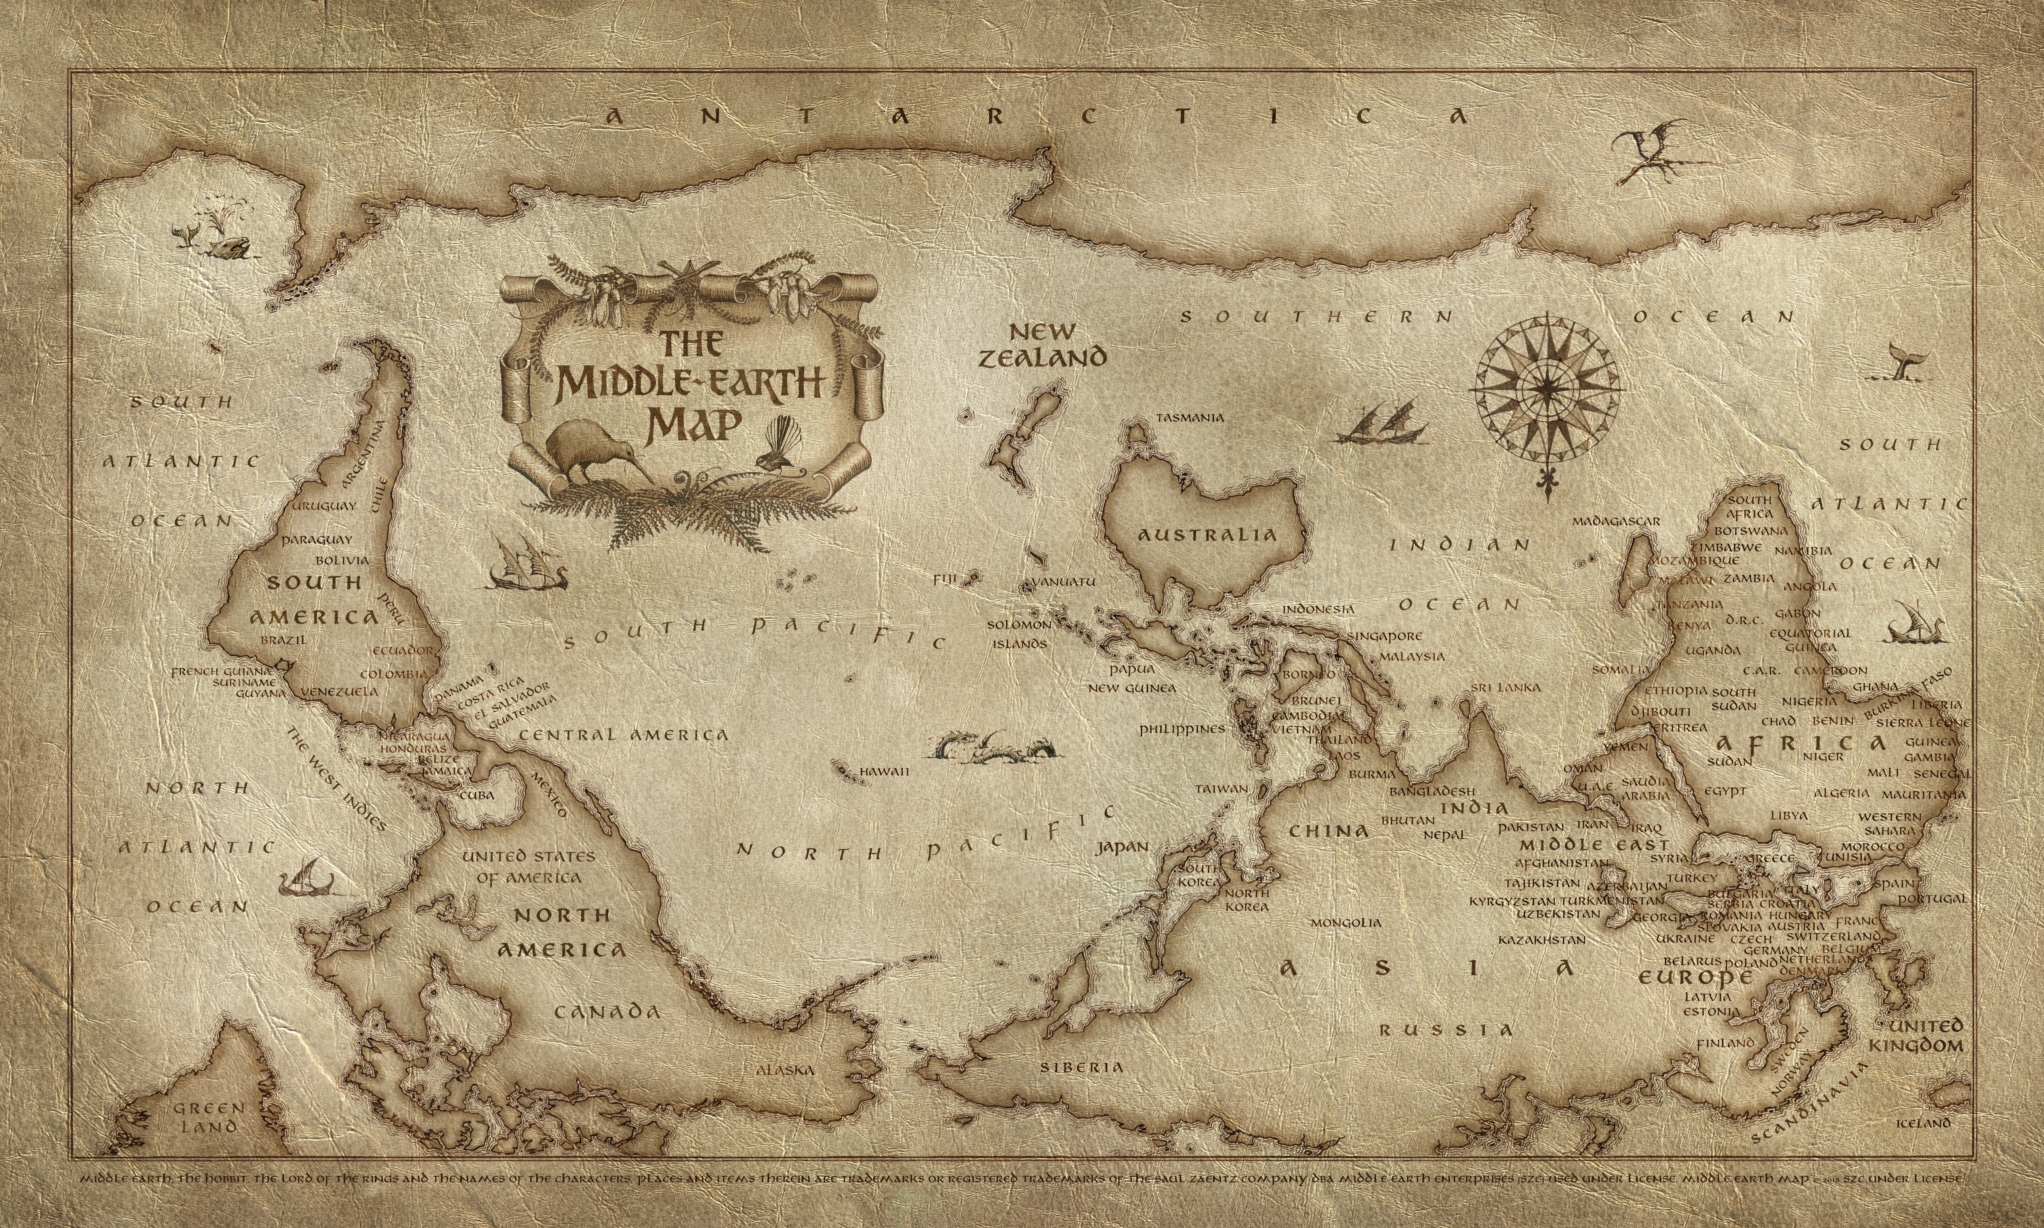 New Zealand creates new world map with itself as Middle Earth